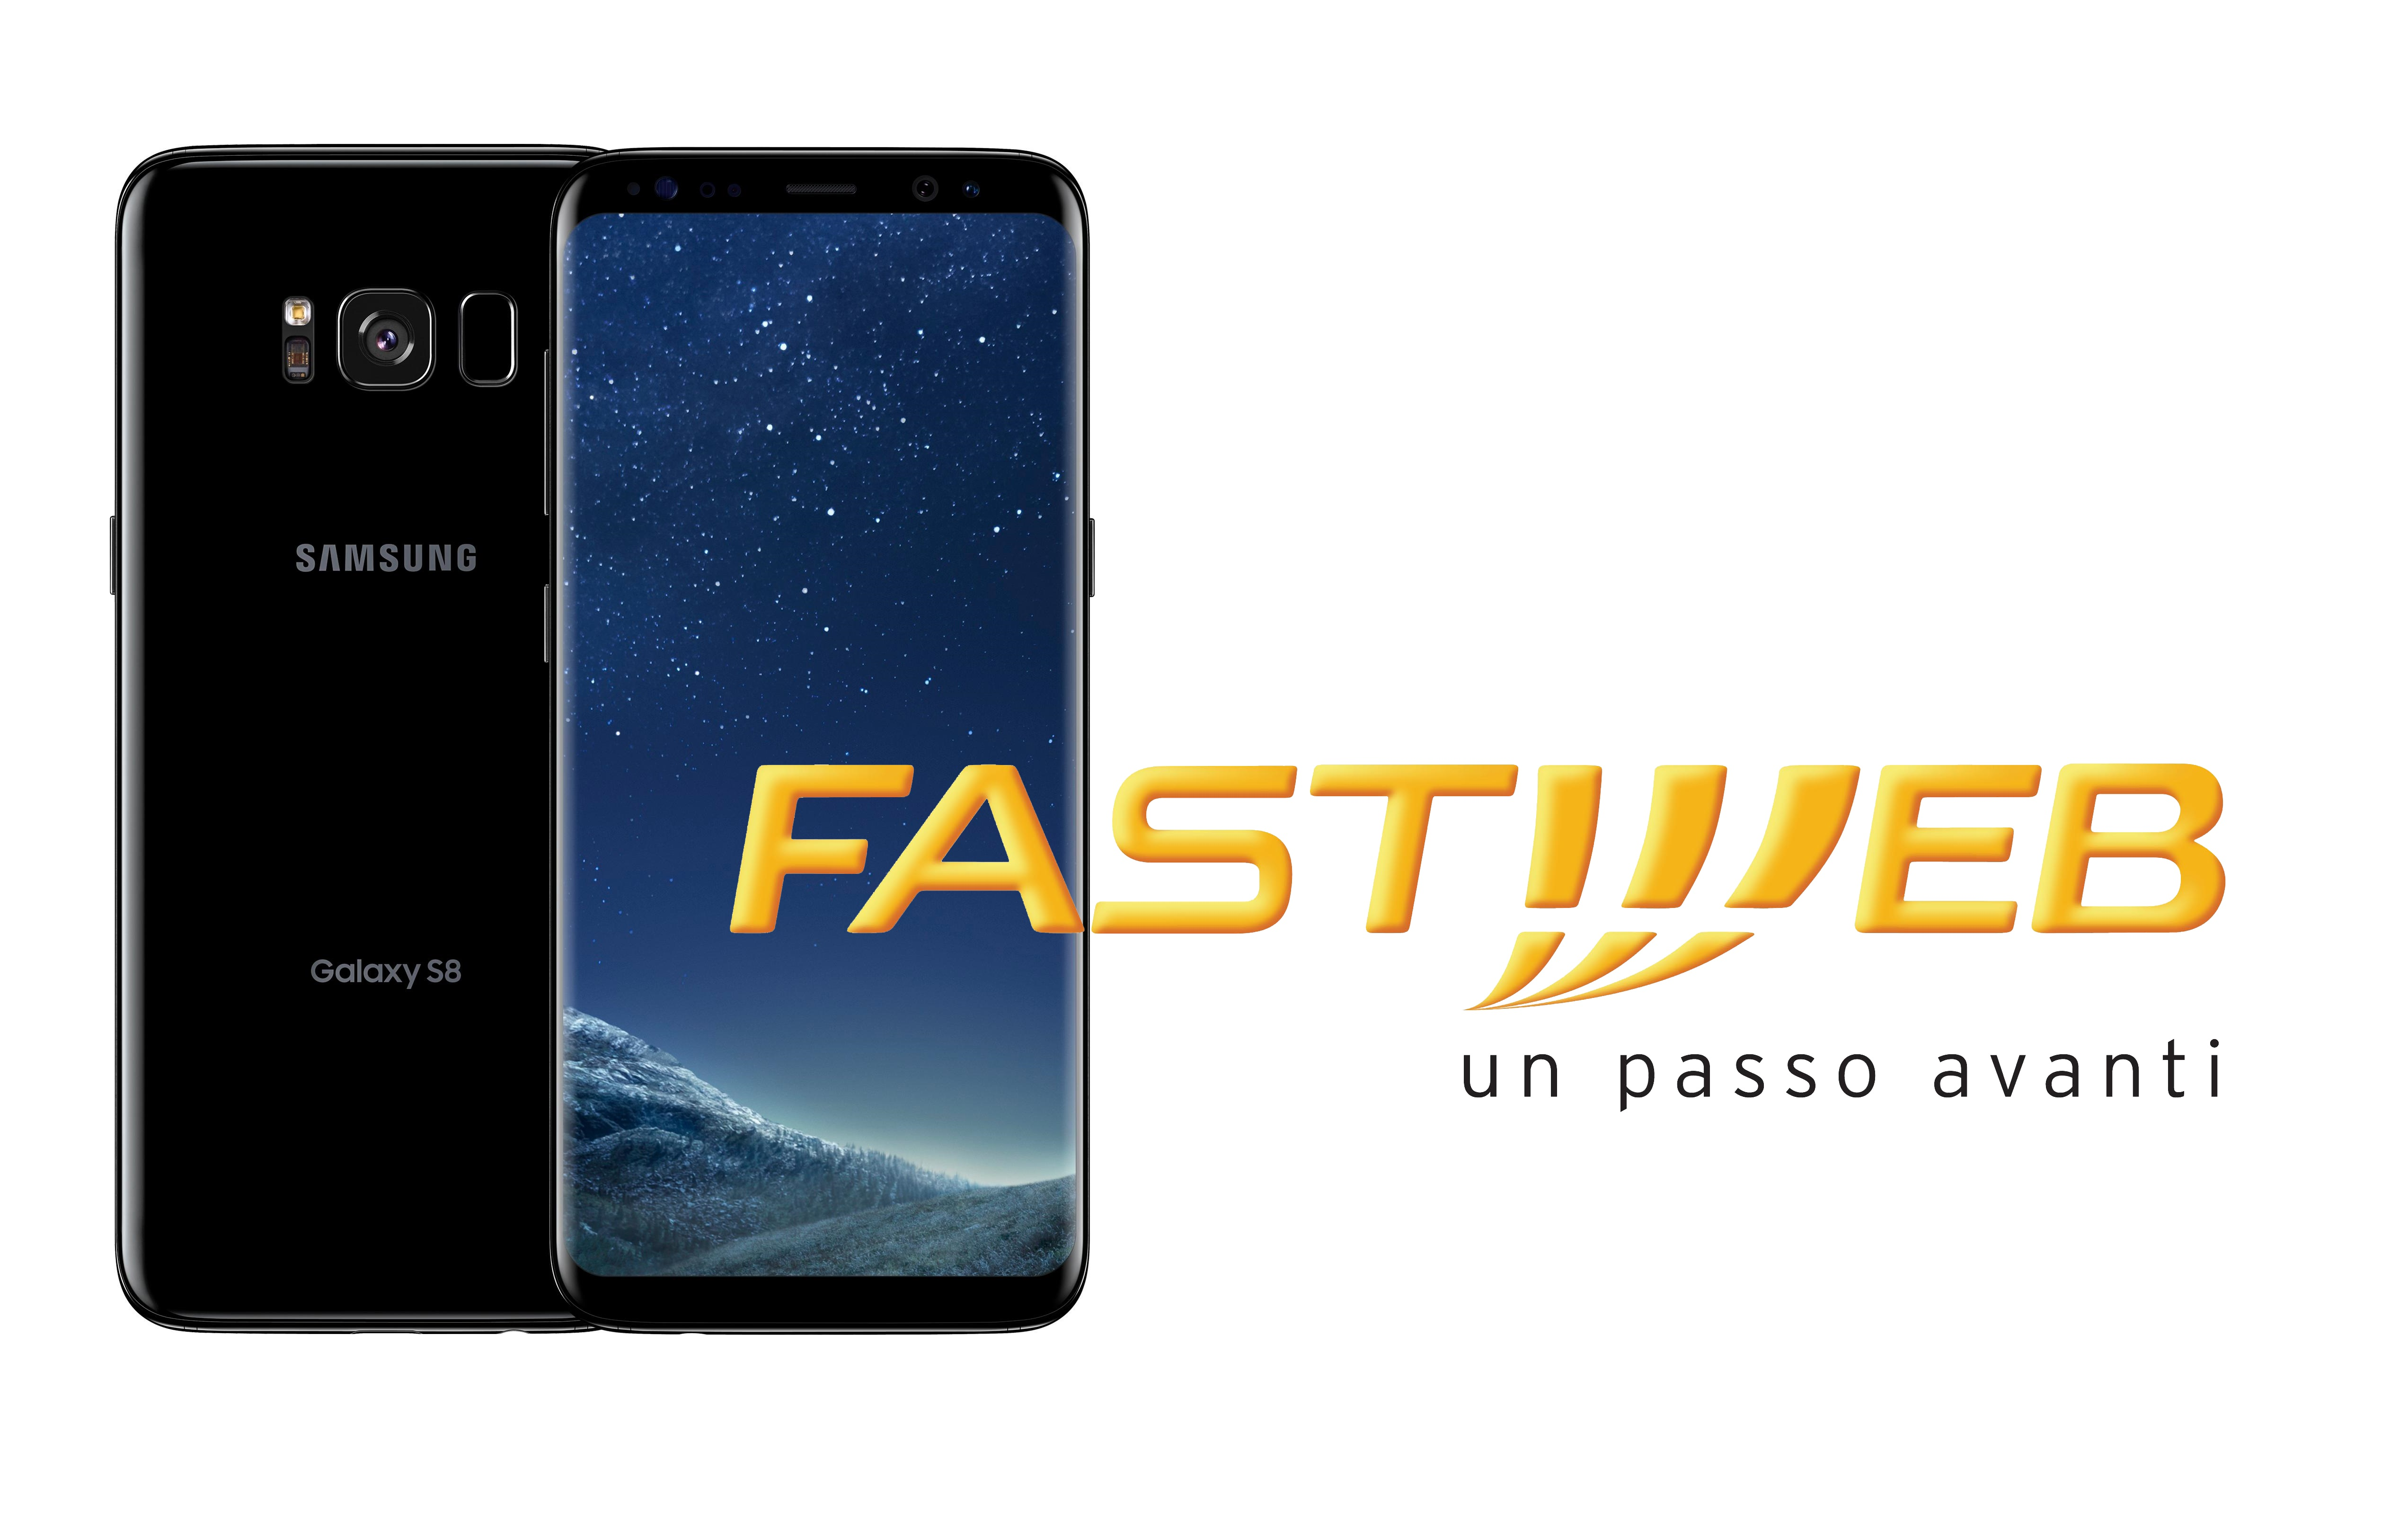 fastweb mobile offre samsung galaxy s8 a rate ad un prezzo super. Black Bedroom Furniture Sets. Home Design Ideas